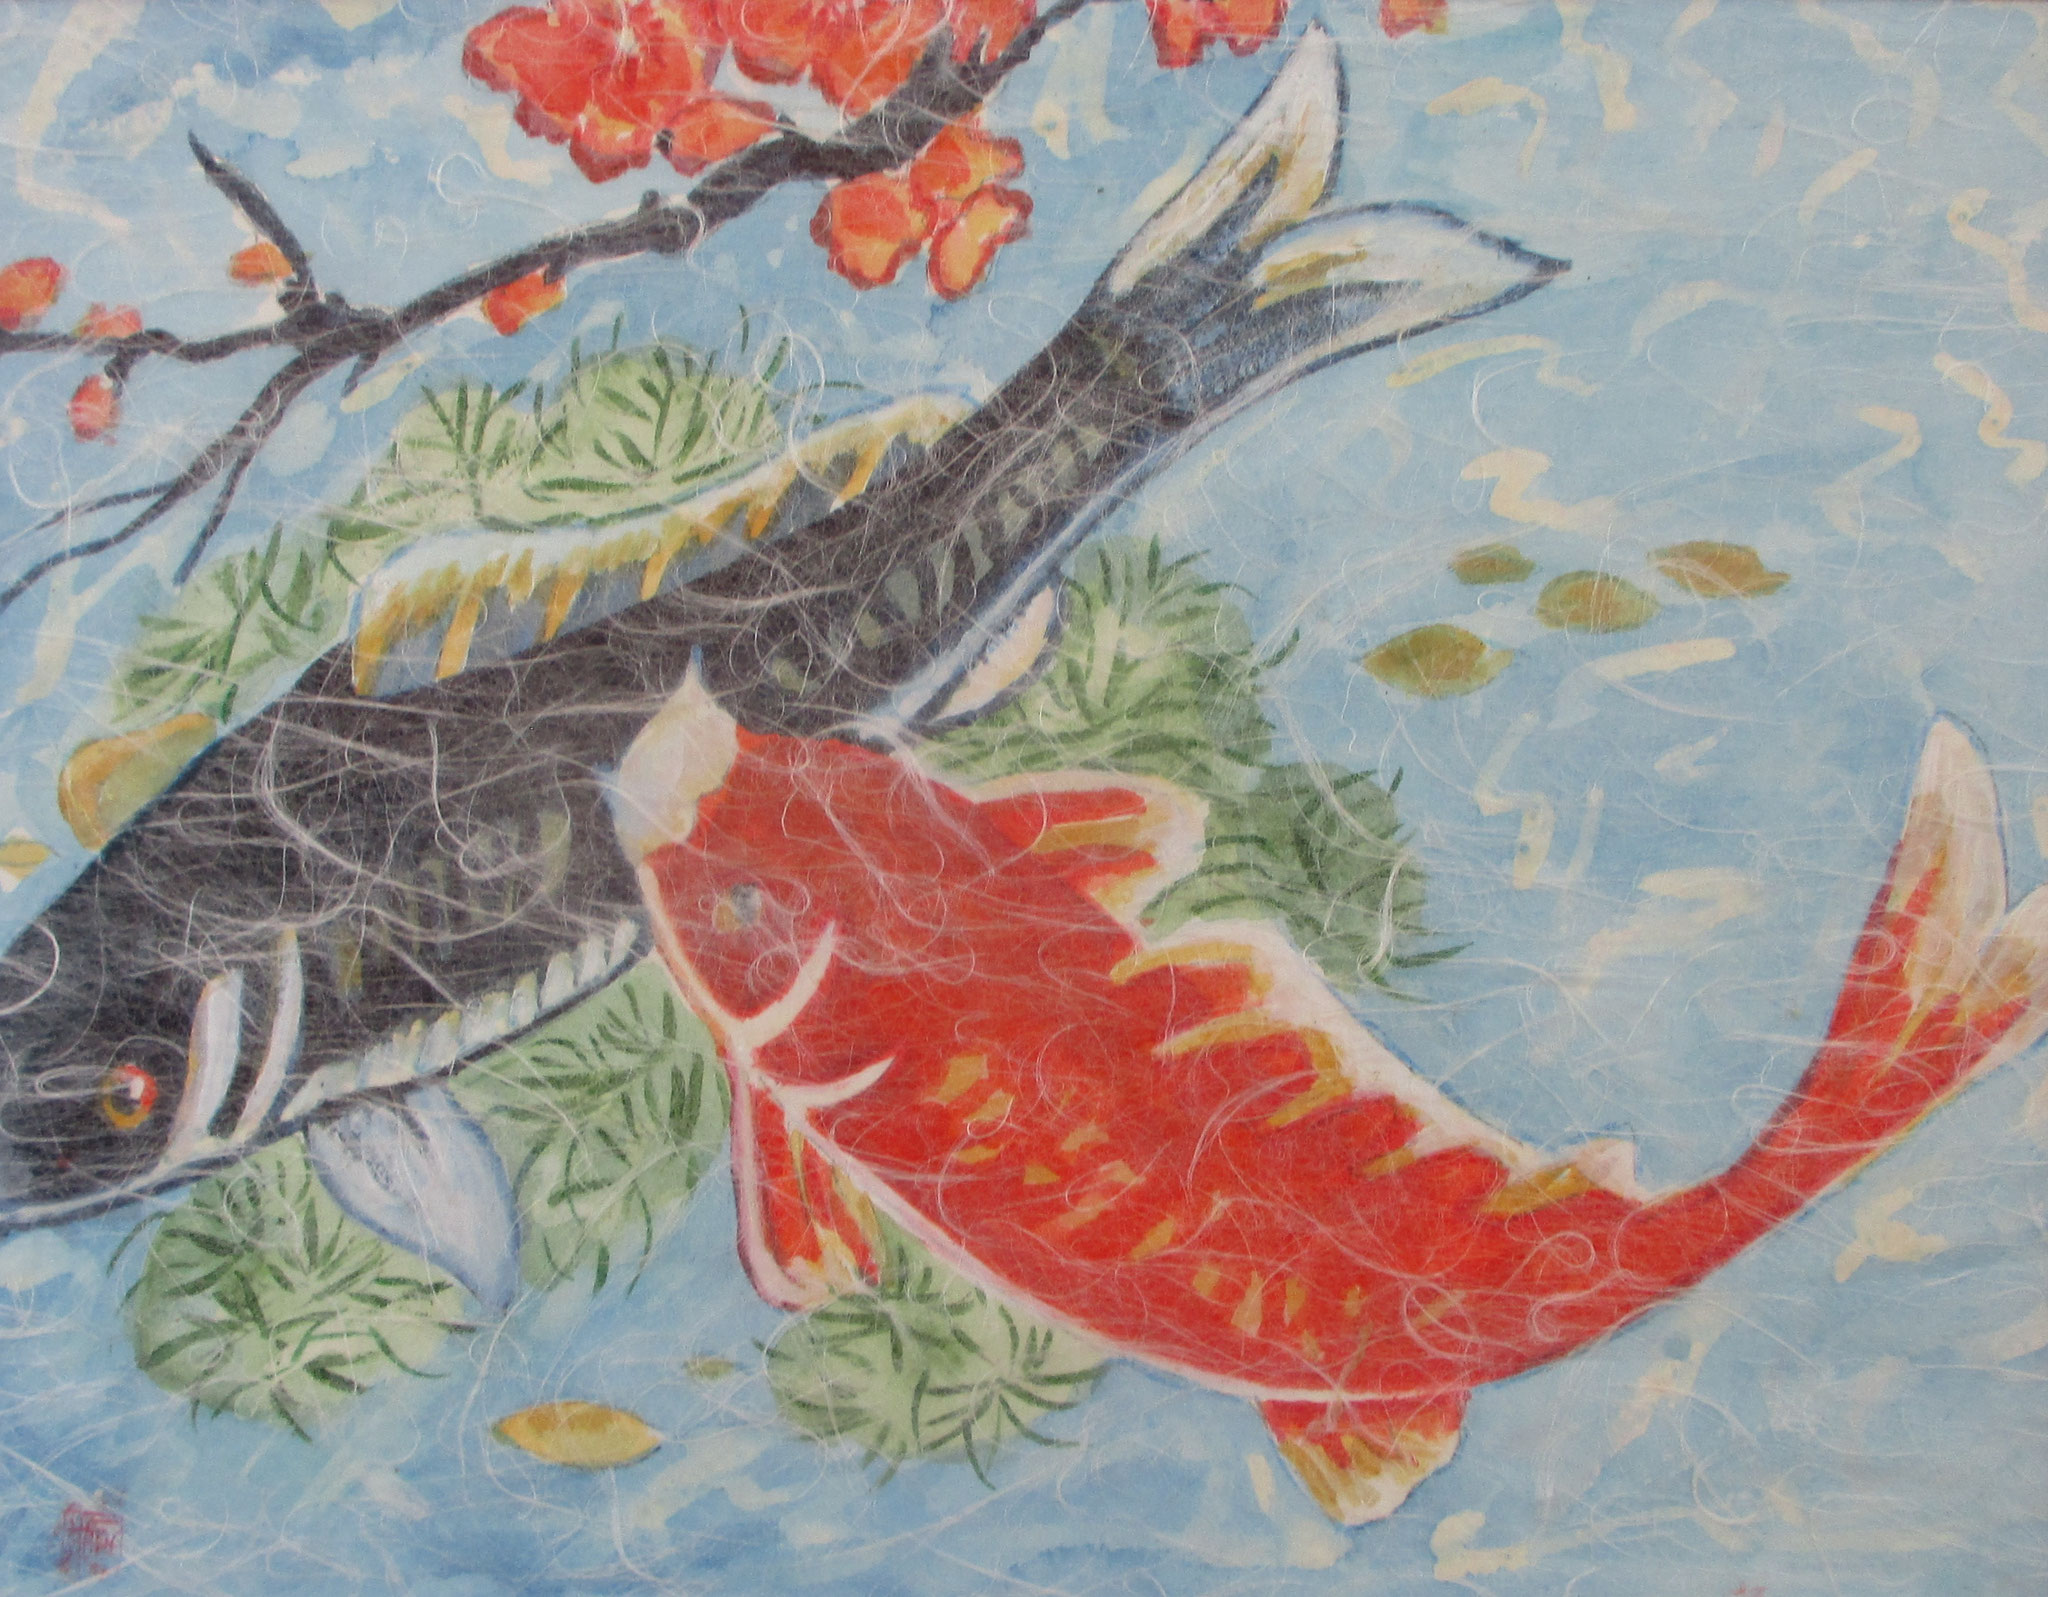 Koi, watercolor, Washi paper overlay, 20 x 16, matted SOLD